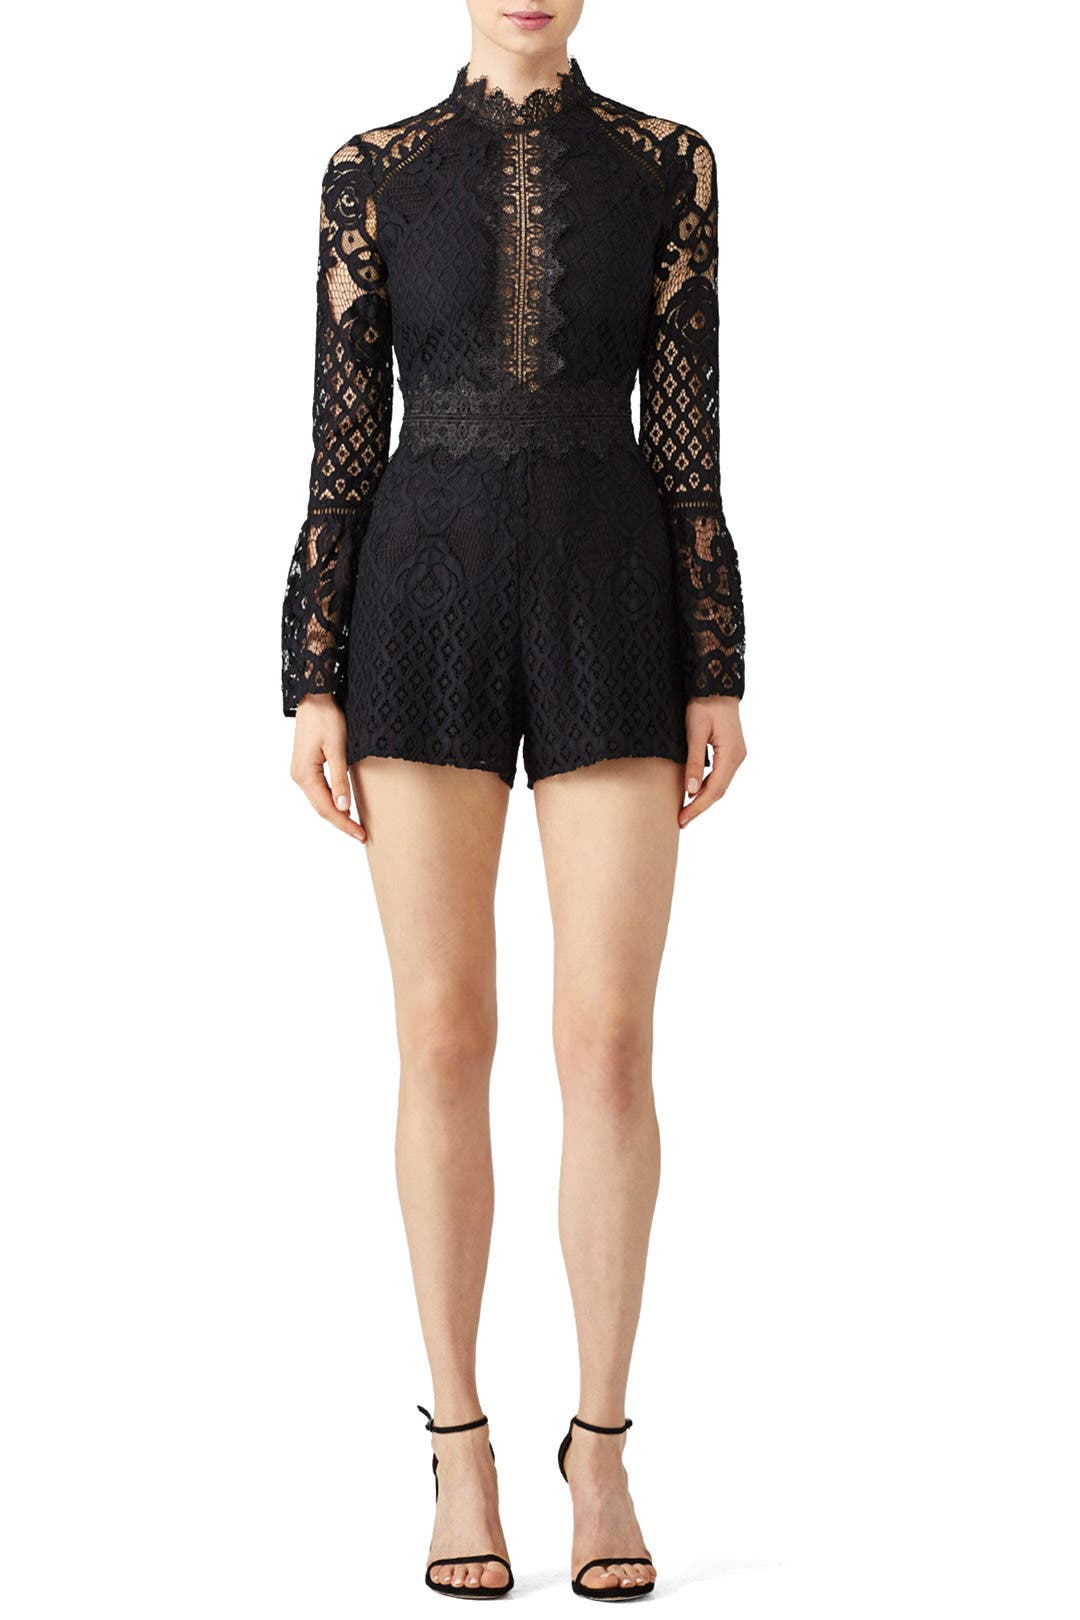 6dffcaec7cd Lena Woven Lace Romper by Adelyn Rae for  30